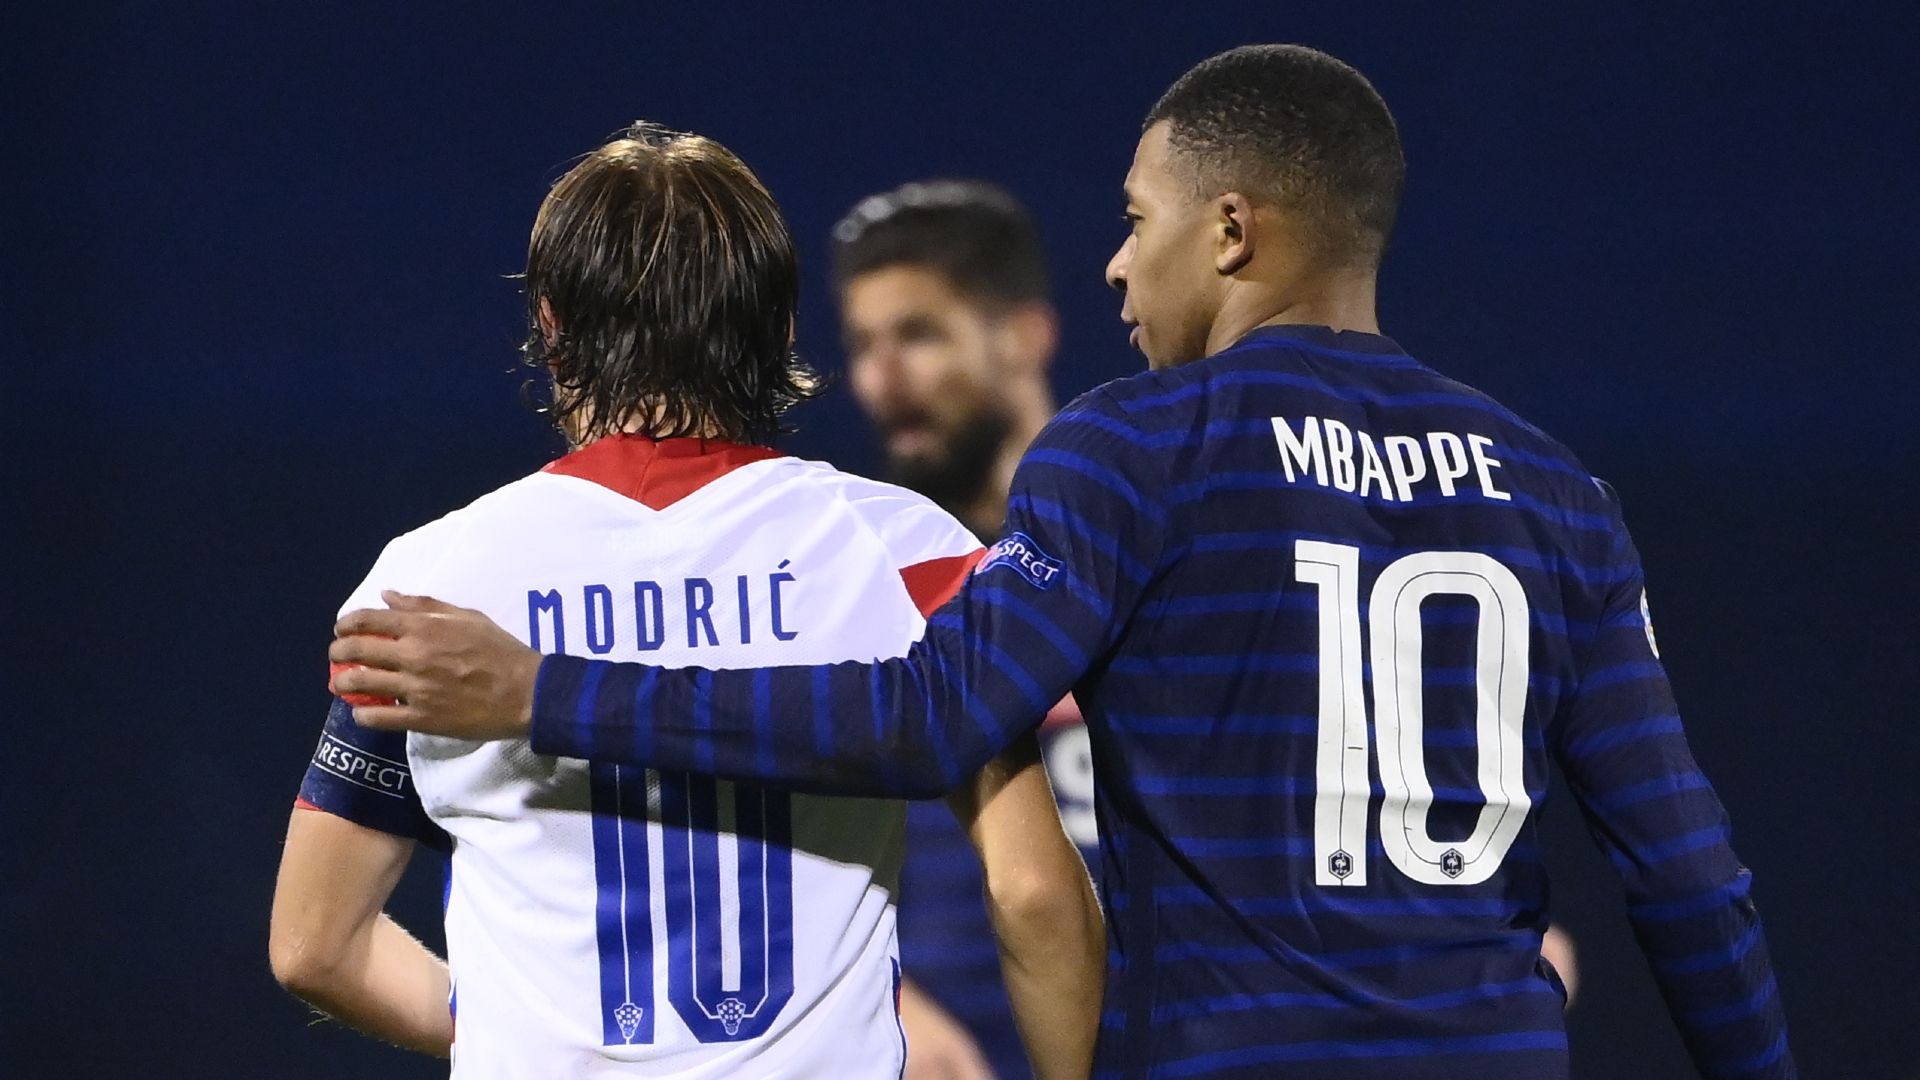 Modric hails PSG star Mbappe: Great players are always welcome at Real Madrid